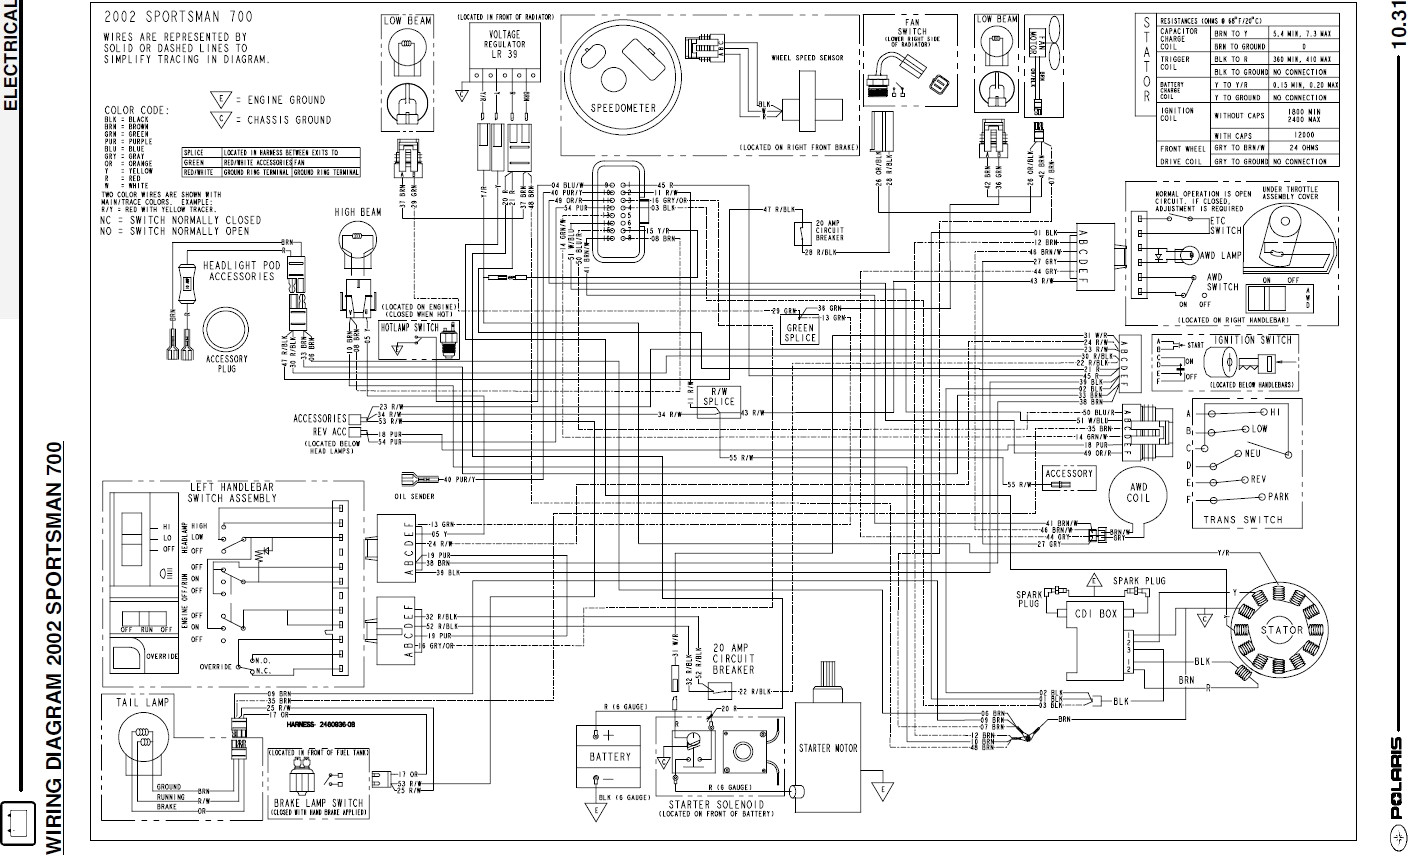 2006 Polaris Sportsman 500 Ho Efi Wiring Diagram Wiring Diagram 2005 Polaris  Sportsman 700 Wiring Diagram Polaris Sportsman 500 Wiring Diagram Key